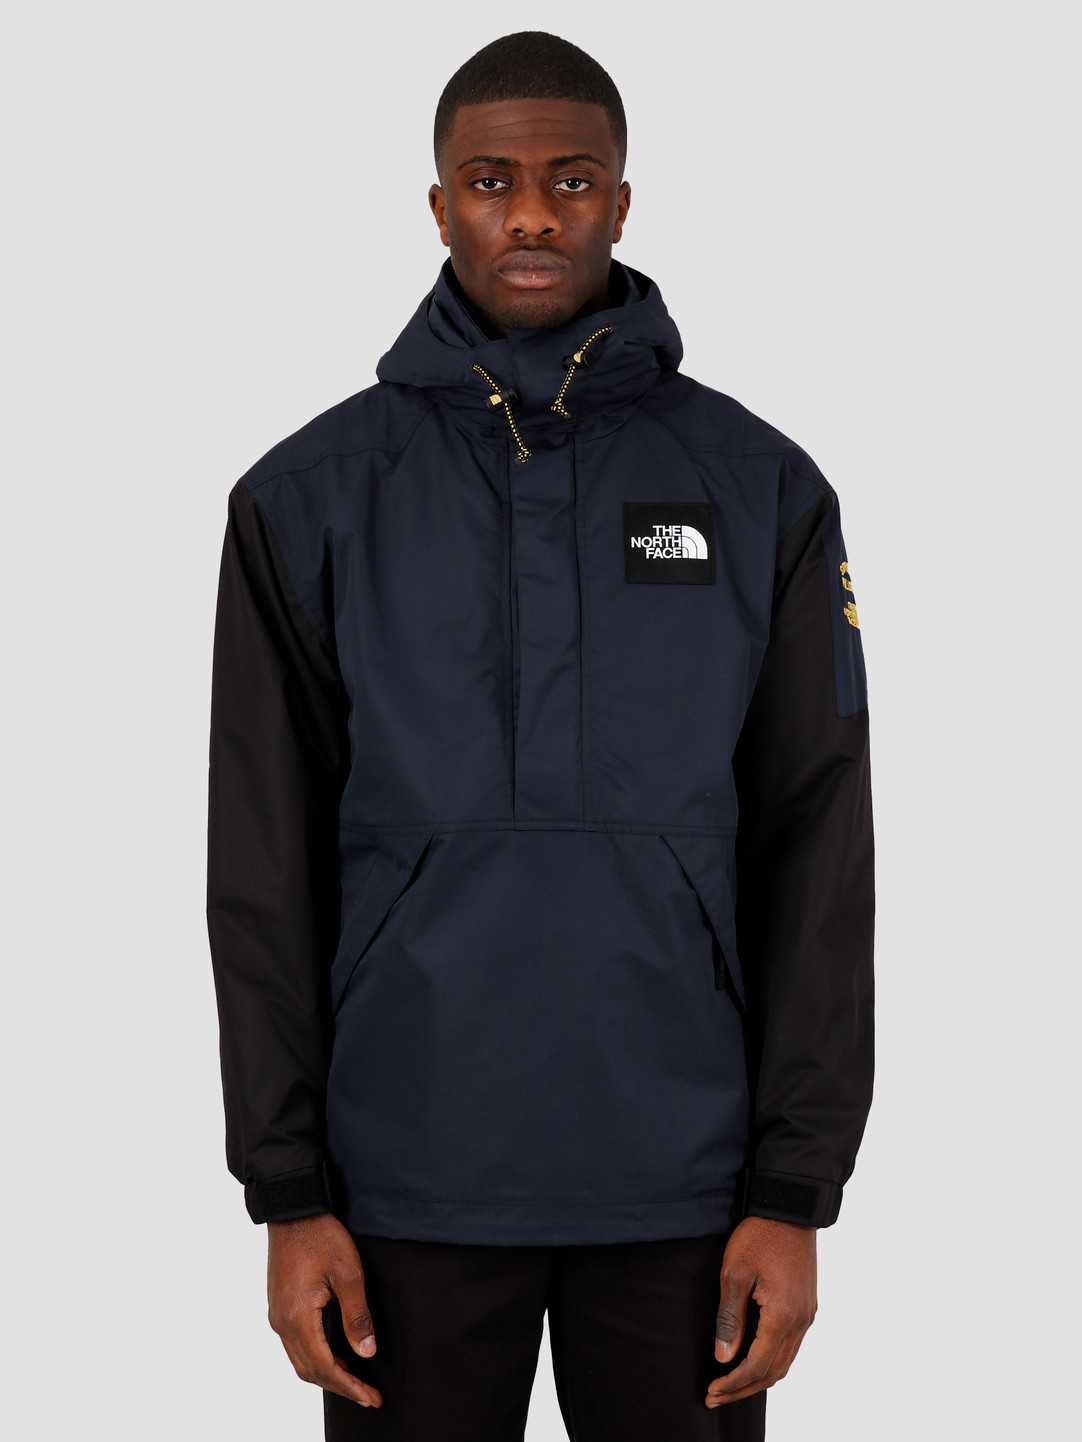 The North Face The North Face HeadPoint Jacket Urban Navy NF0A492EH2G1